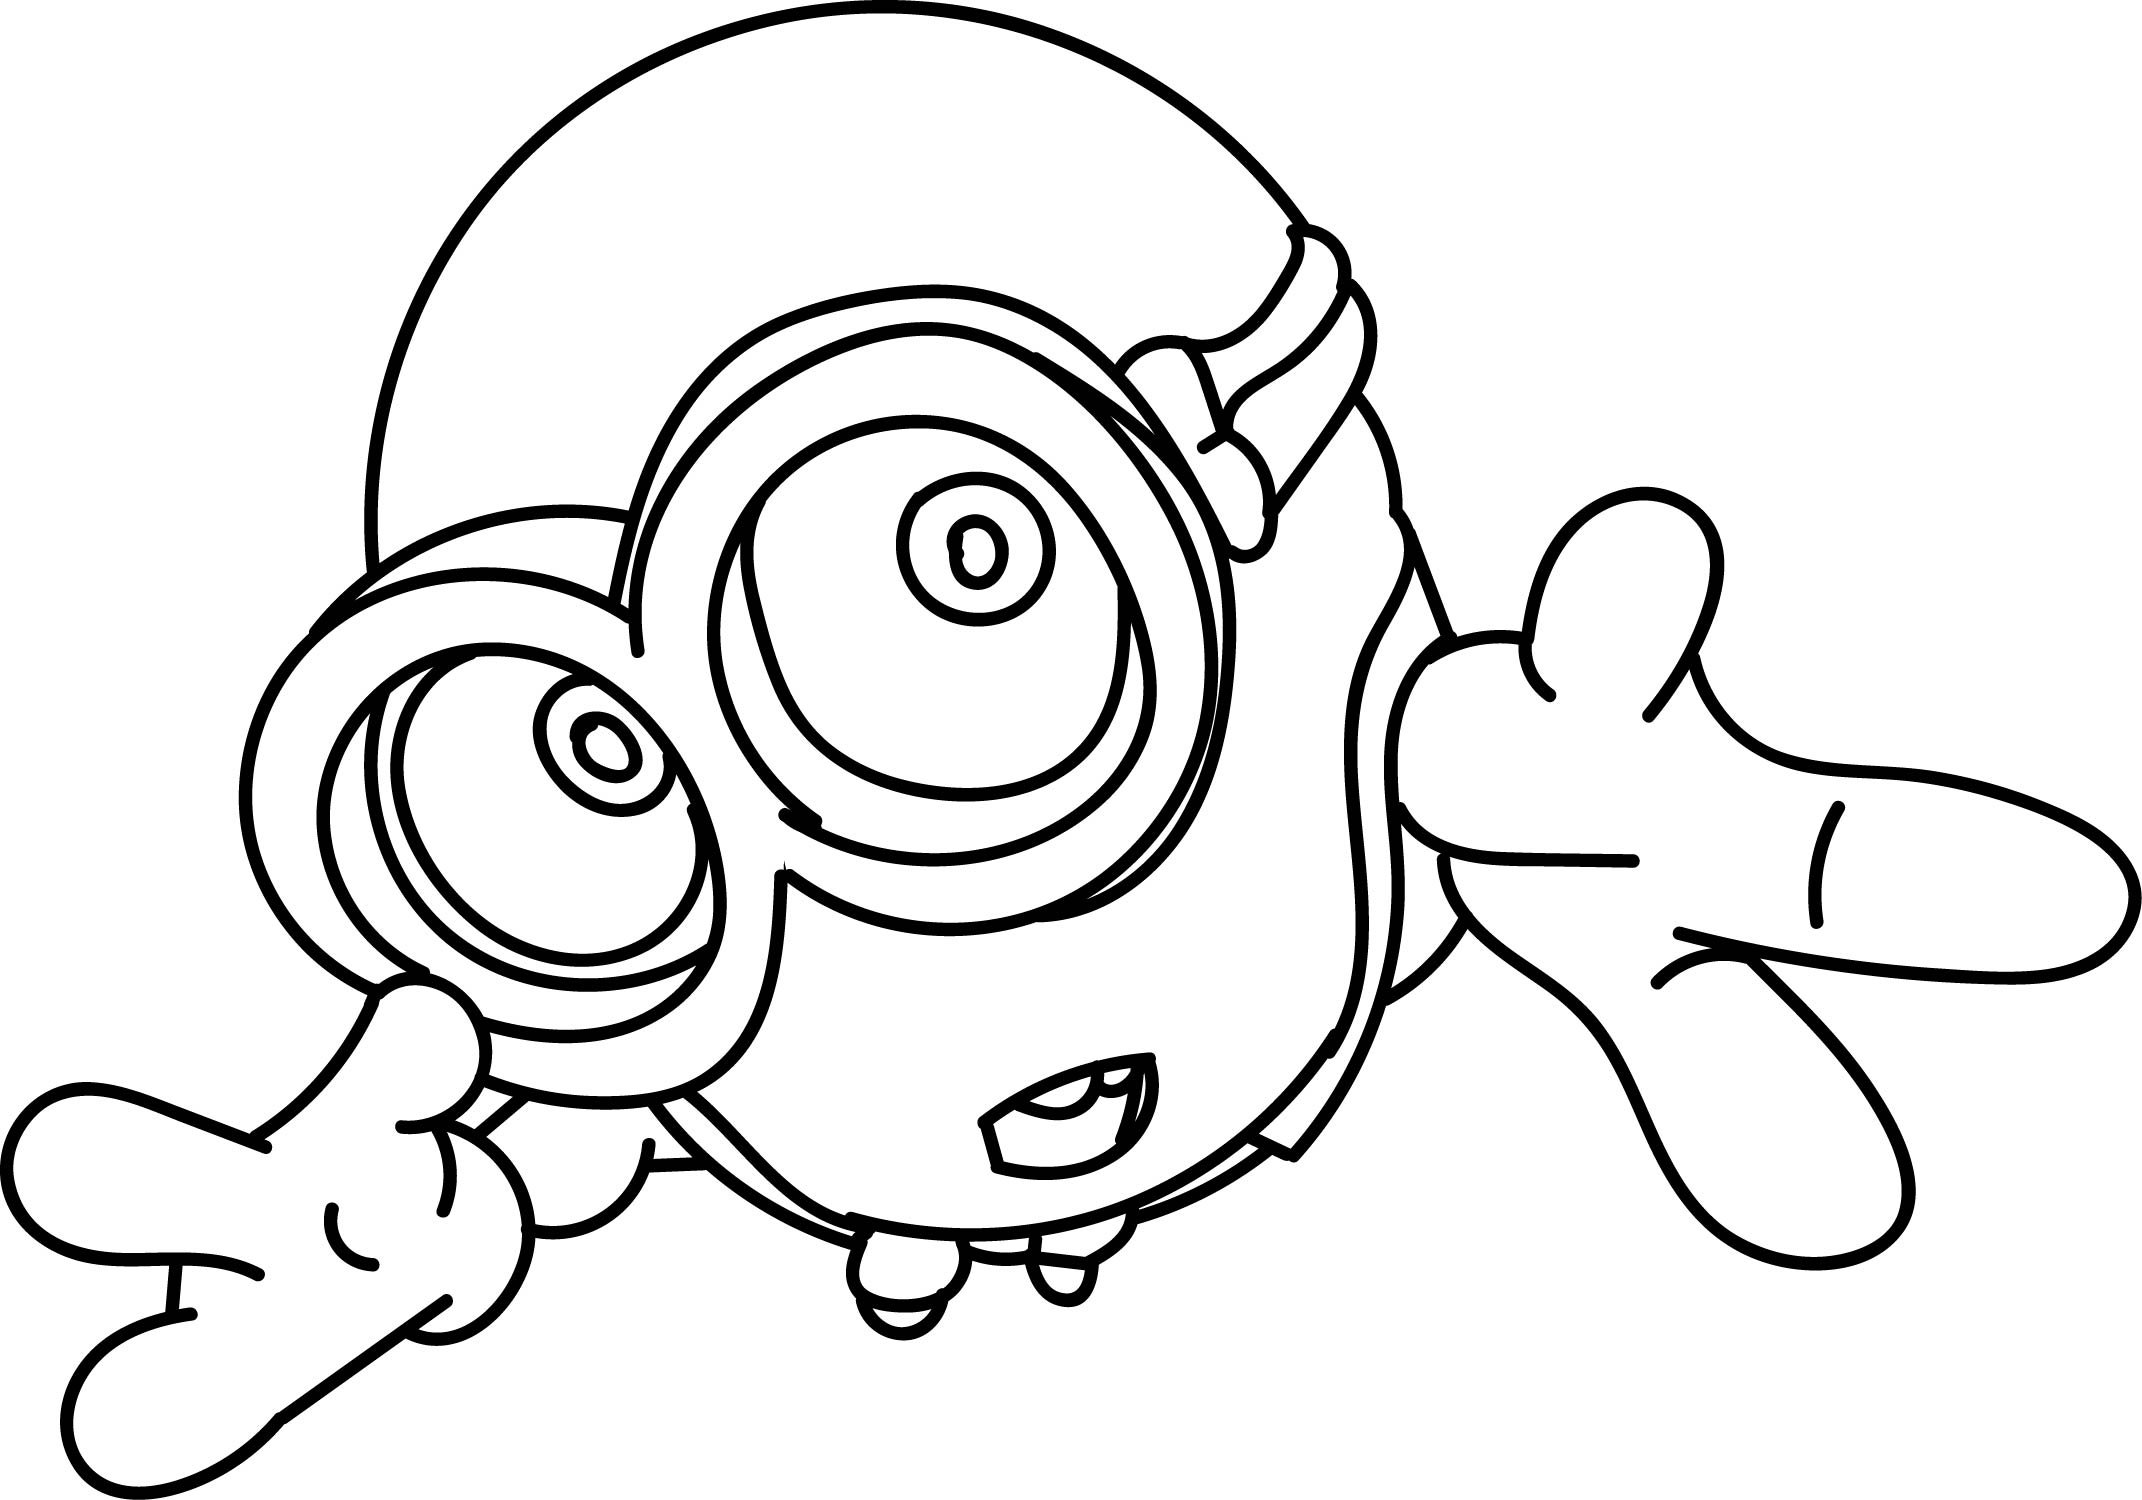 Cute Minion Coloring Pages Sketch Coloring Page